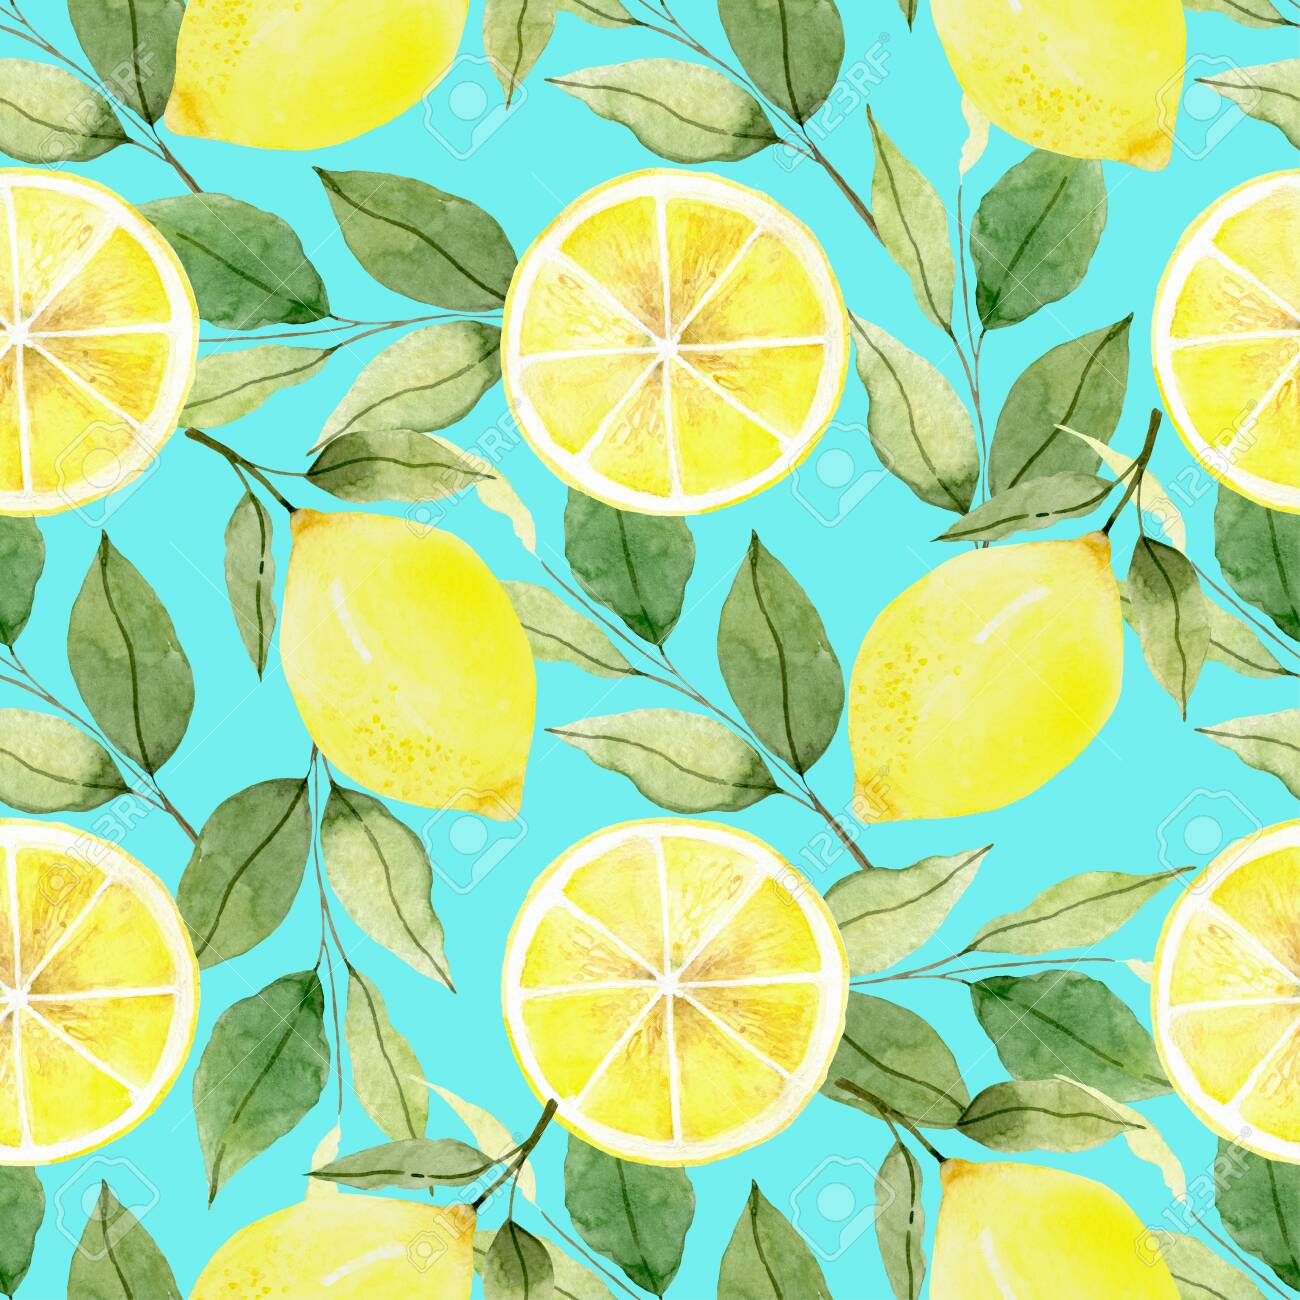 lemon watercolor pattern background fruit wallpaper lemon stock photo picture and royalty free image image 145163114 lemon watercolor pattern background fruit wallpaper lemon